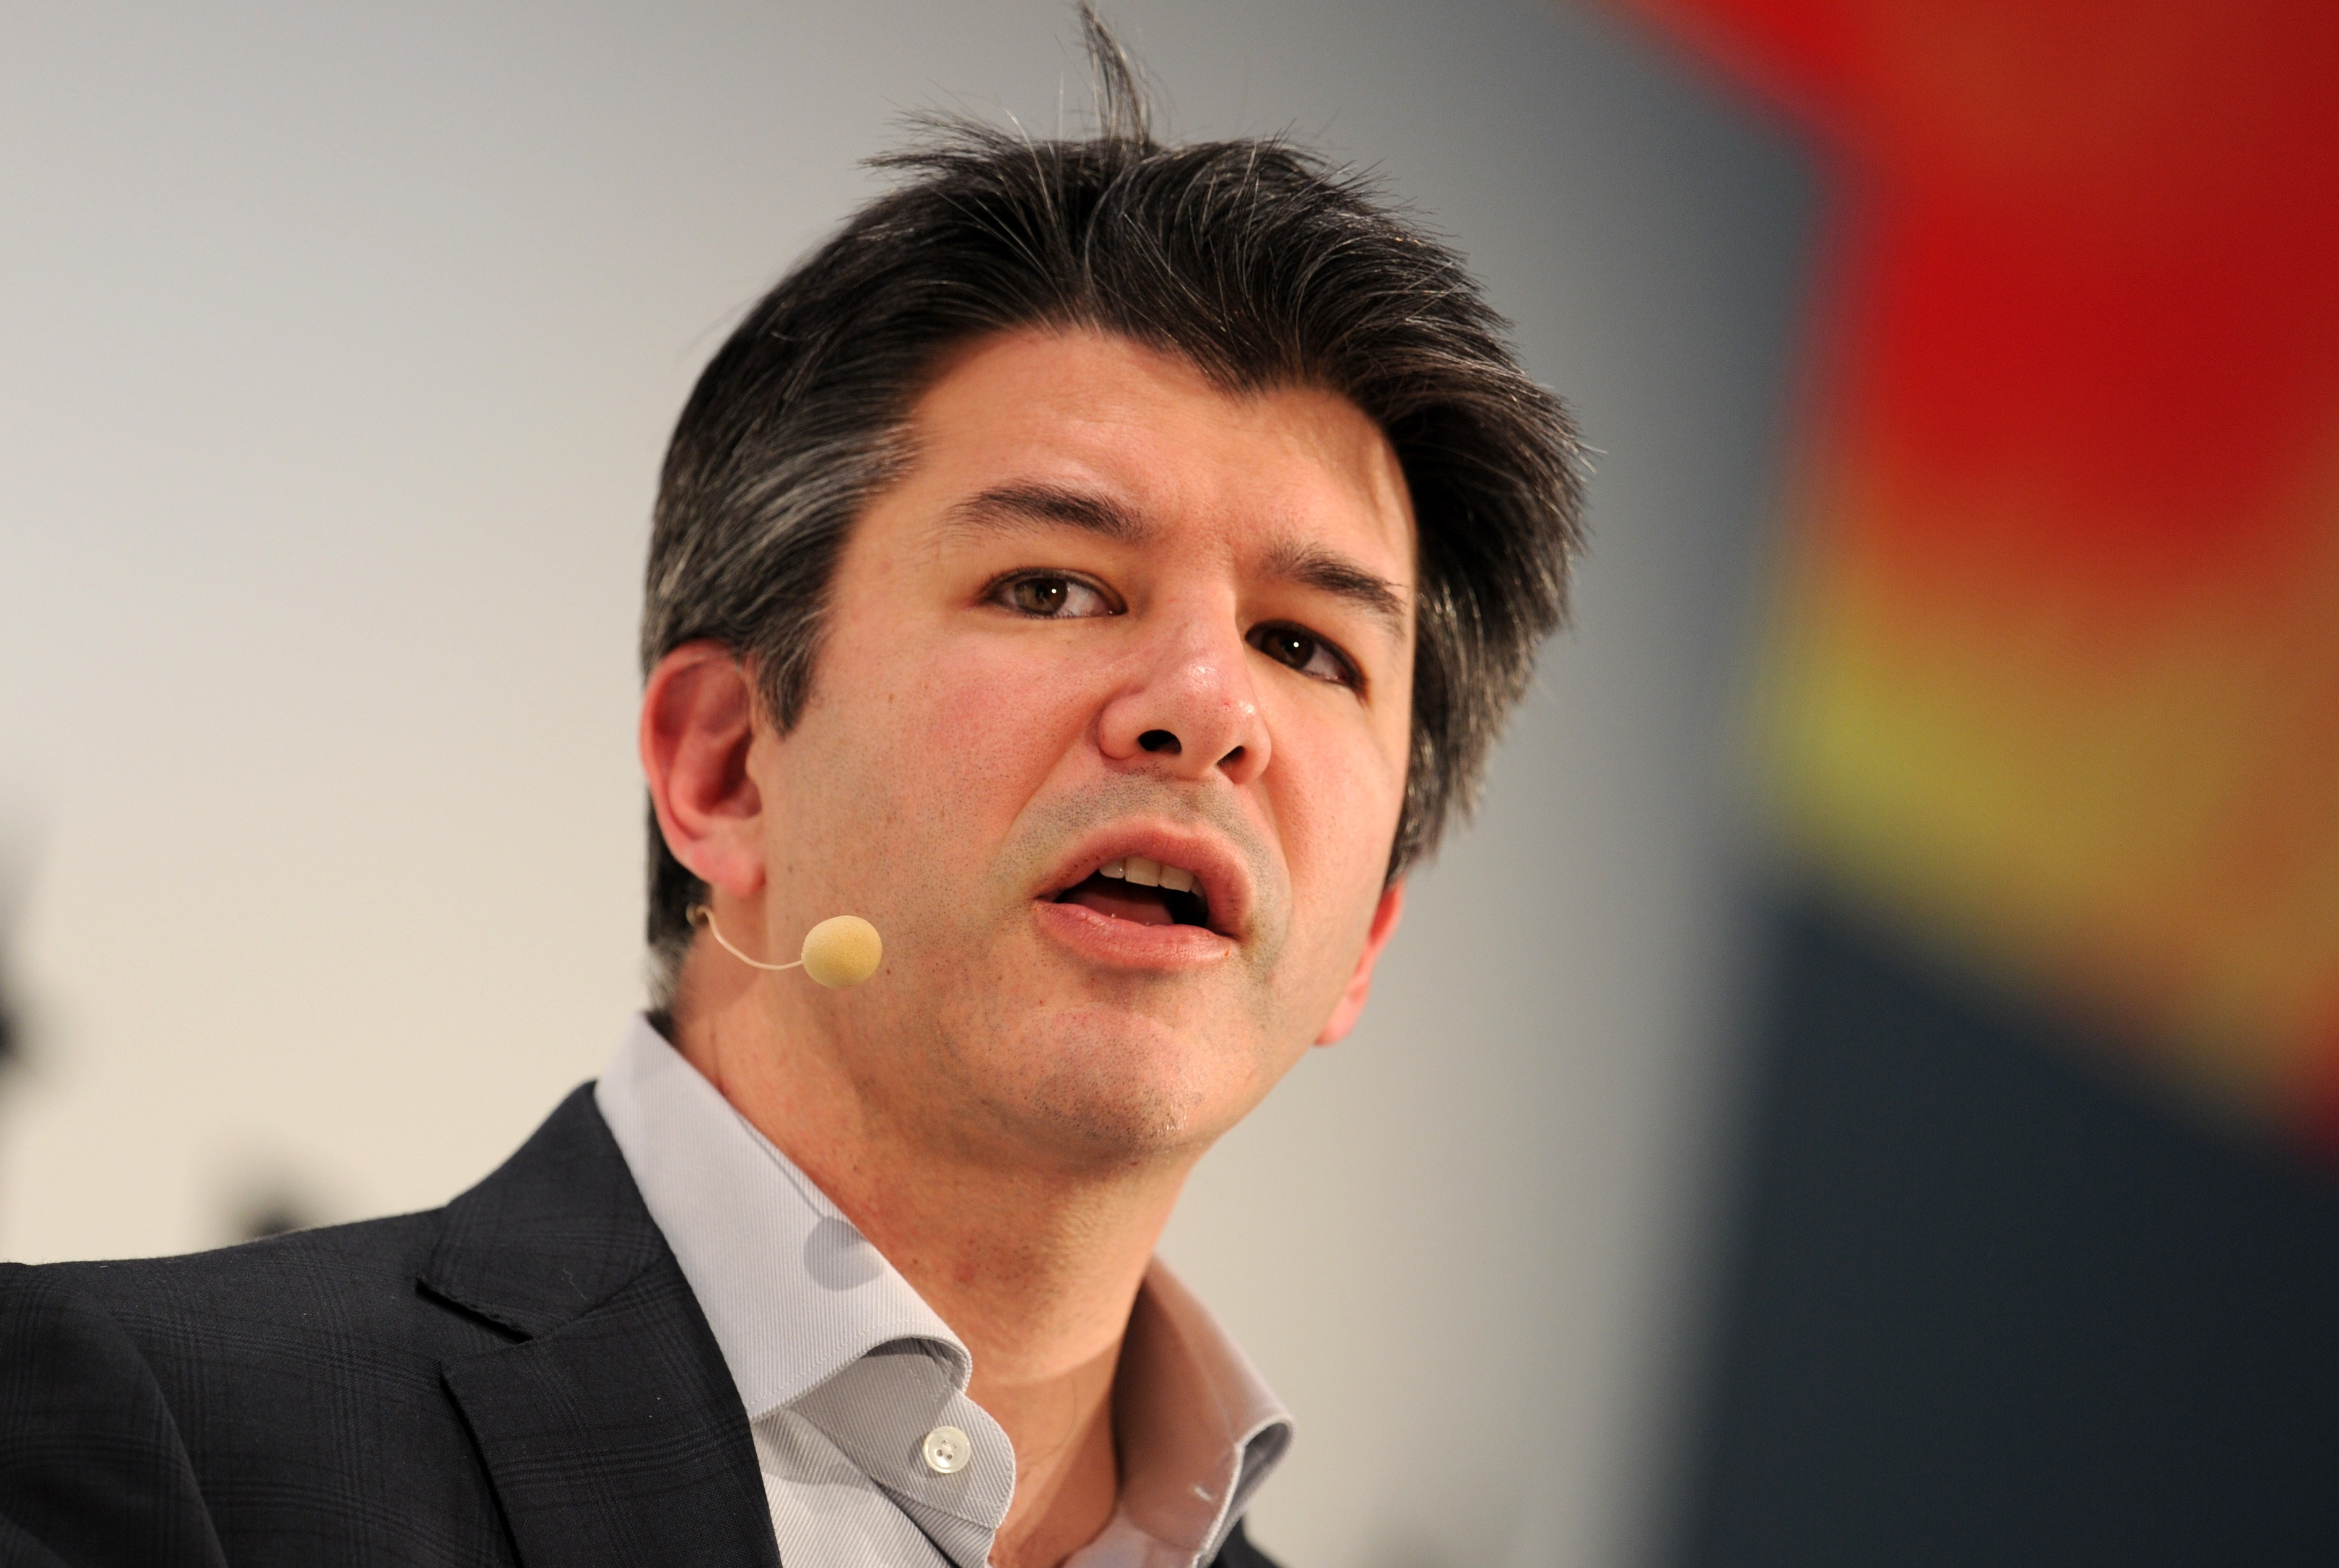 Travis Kalanick, co-founder and CEO of Uber, speaks during the opening of the Digital Life Design (DLD) Conference in Munich, Germany in 2015. He announced he was stepping down from his role with the ride-sharing giant on June 20, 2017. (Tobias Hase/AFP/Getty Images)